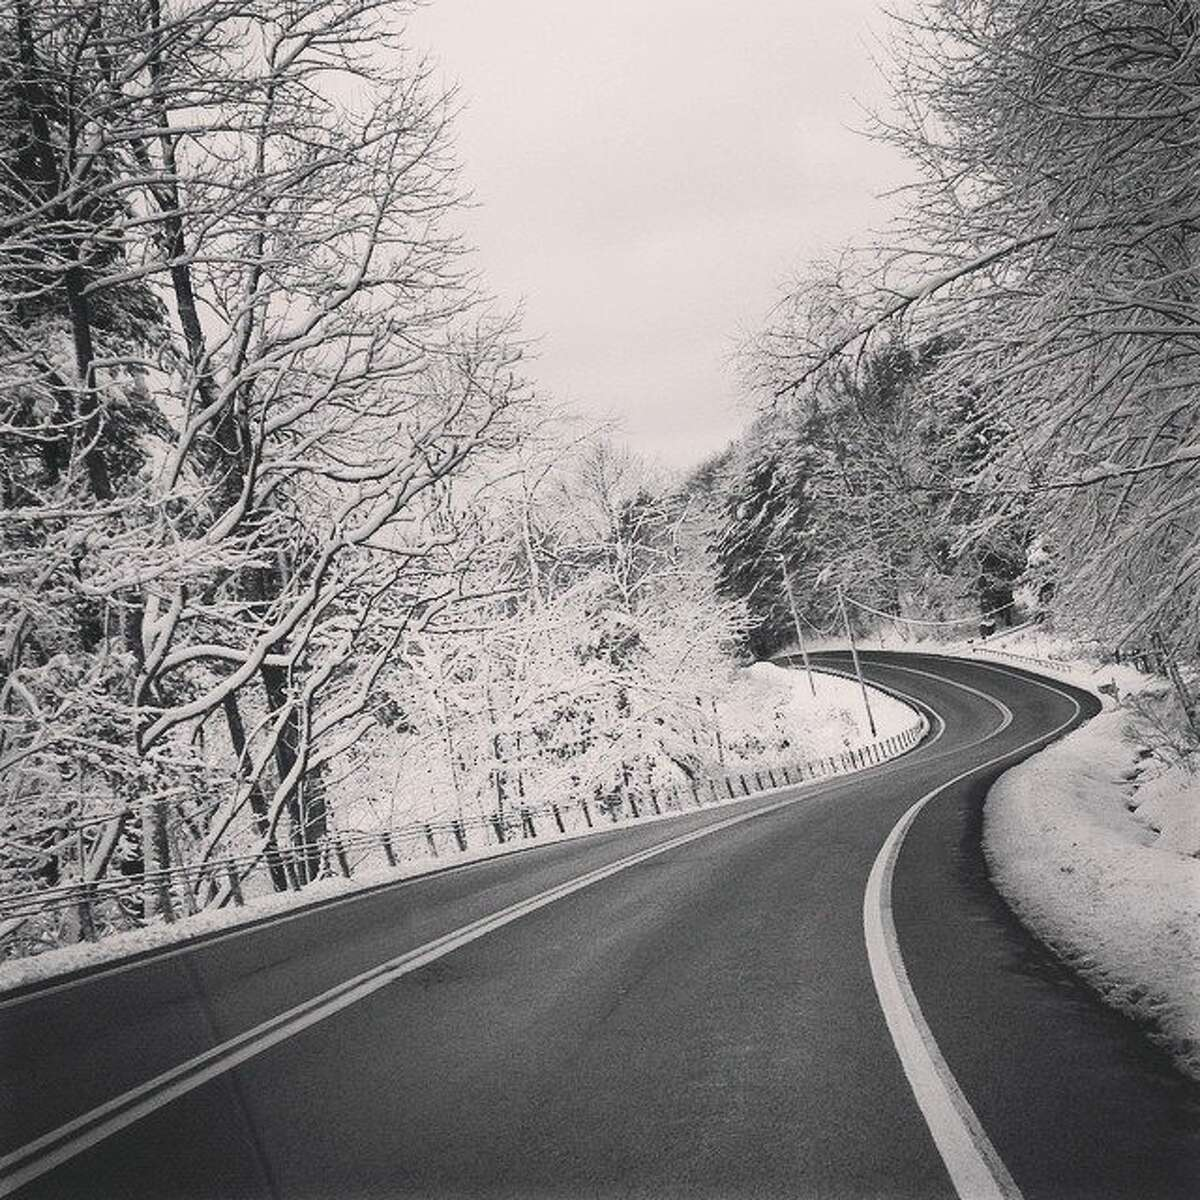 A winding, wintry road in East Nassau. Photo by Mary Beth Mullen, of the same town.